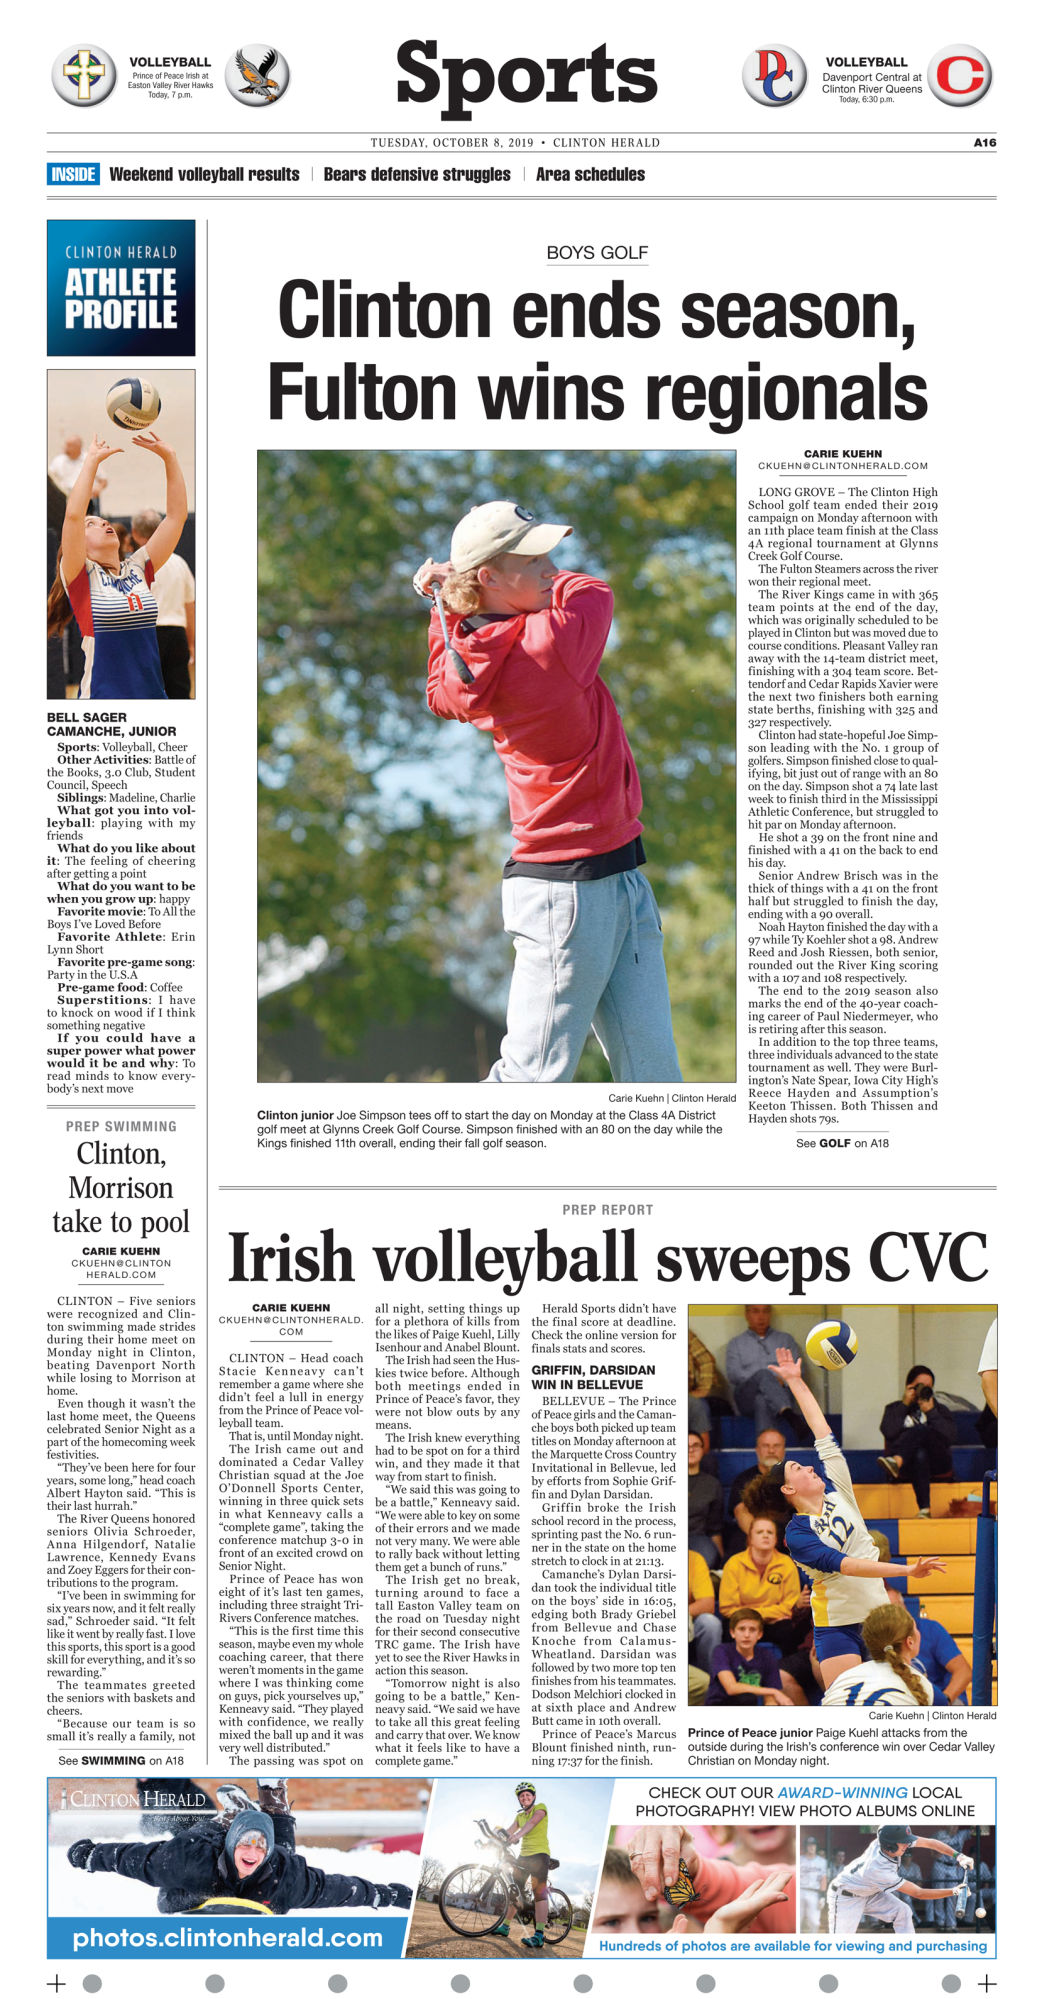 Sports page for Oct. 8, 2019